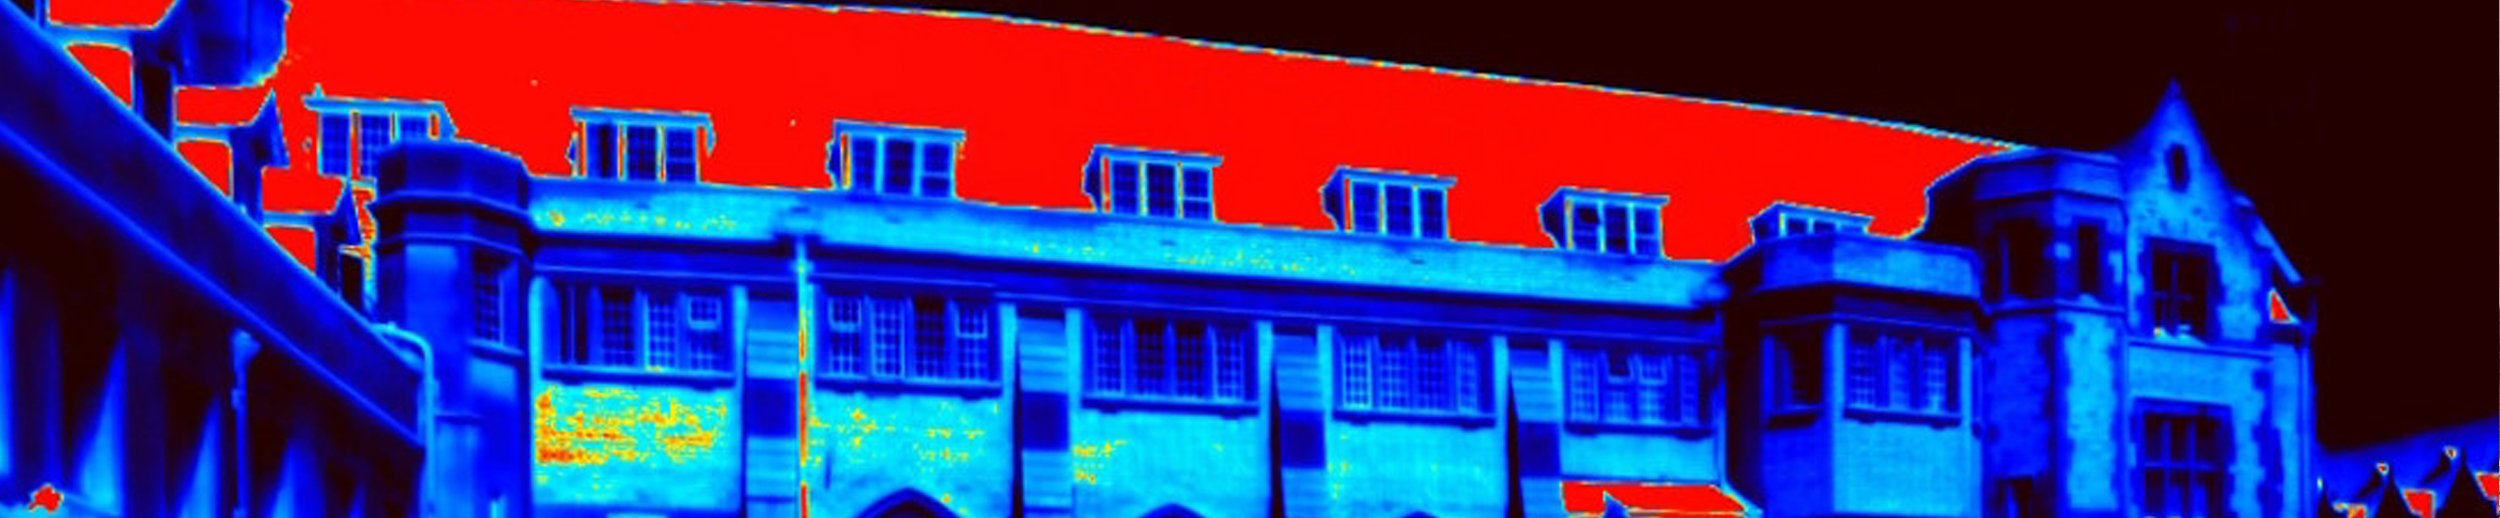 Opgal thermal cameras for infrared thermography